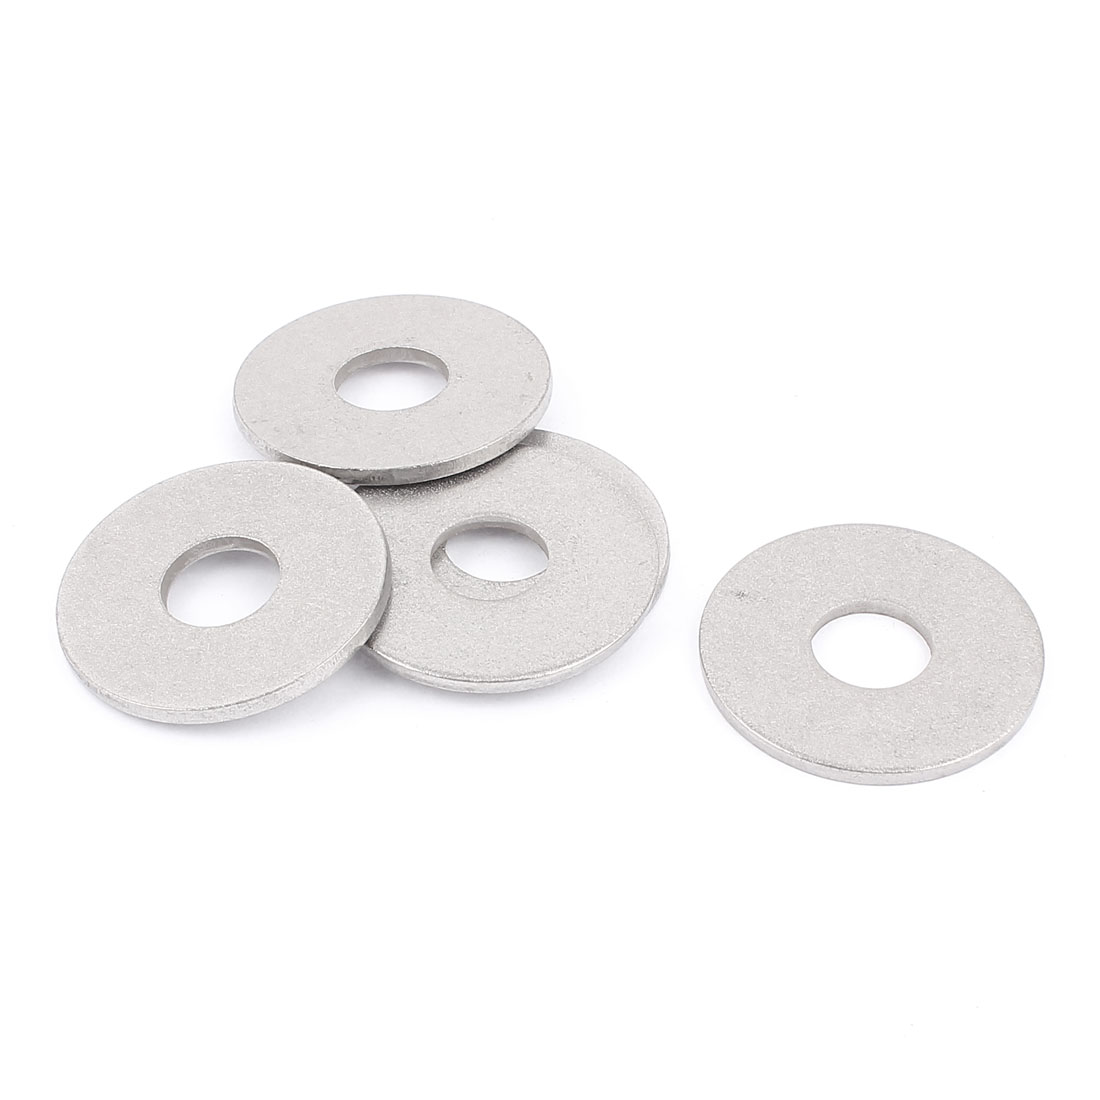 14mm Hole Size 304 Stainless Steel Metric Flat Washer Spacer 5pcs